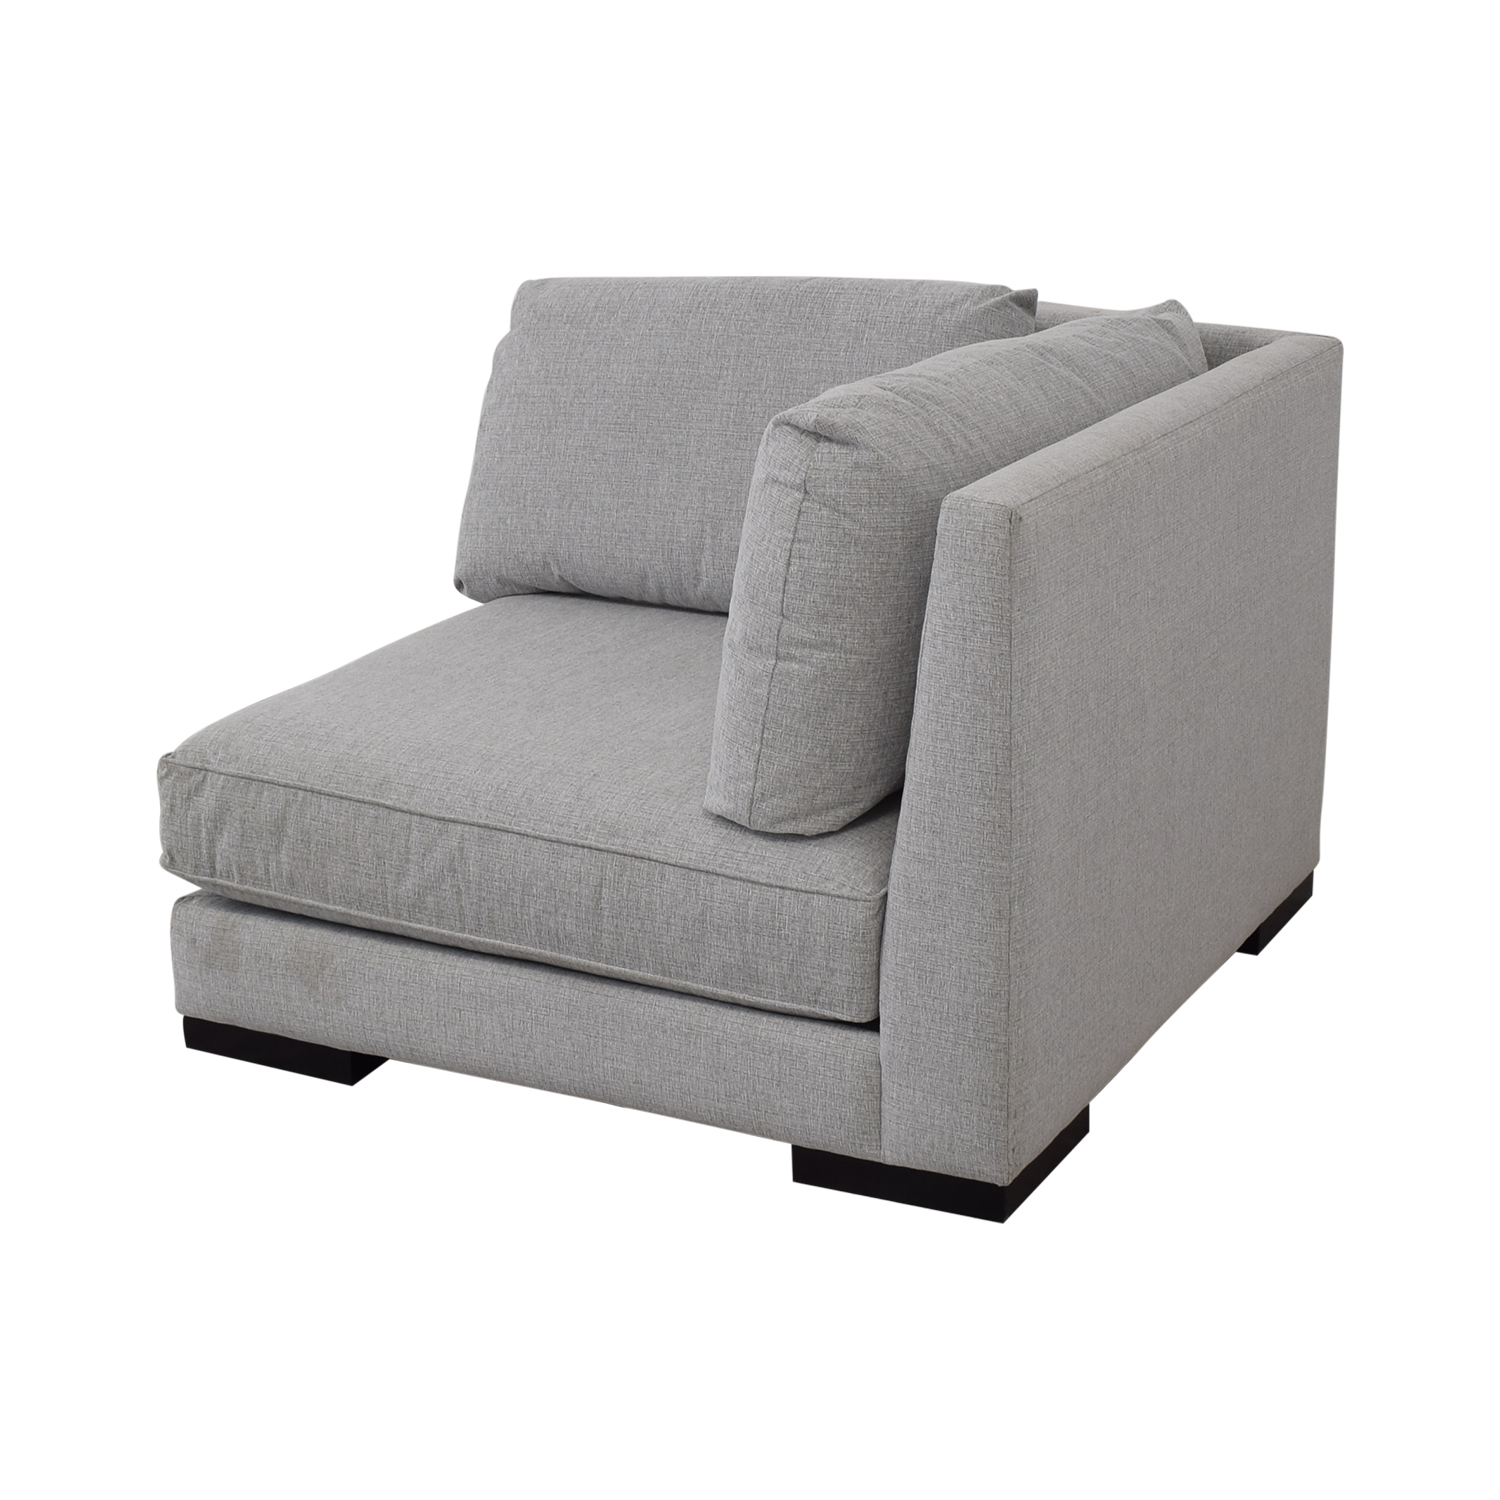 Younger Furniture Chill Corner Chair Younger Furniture